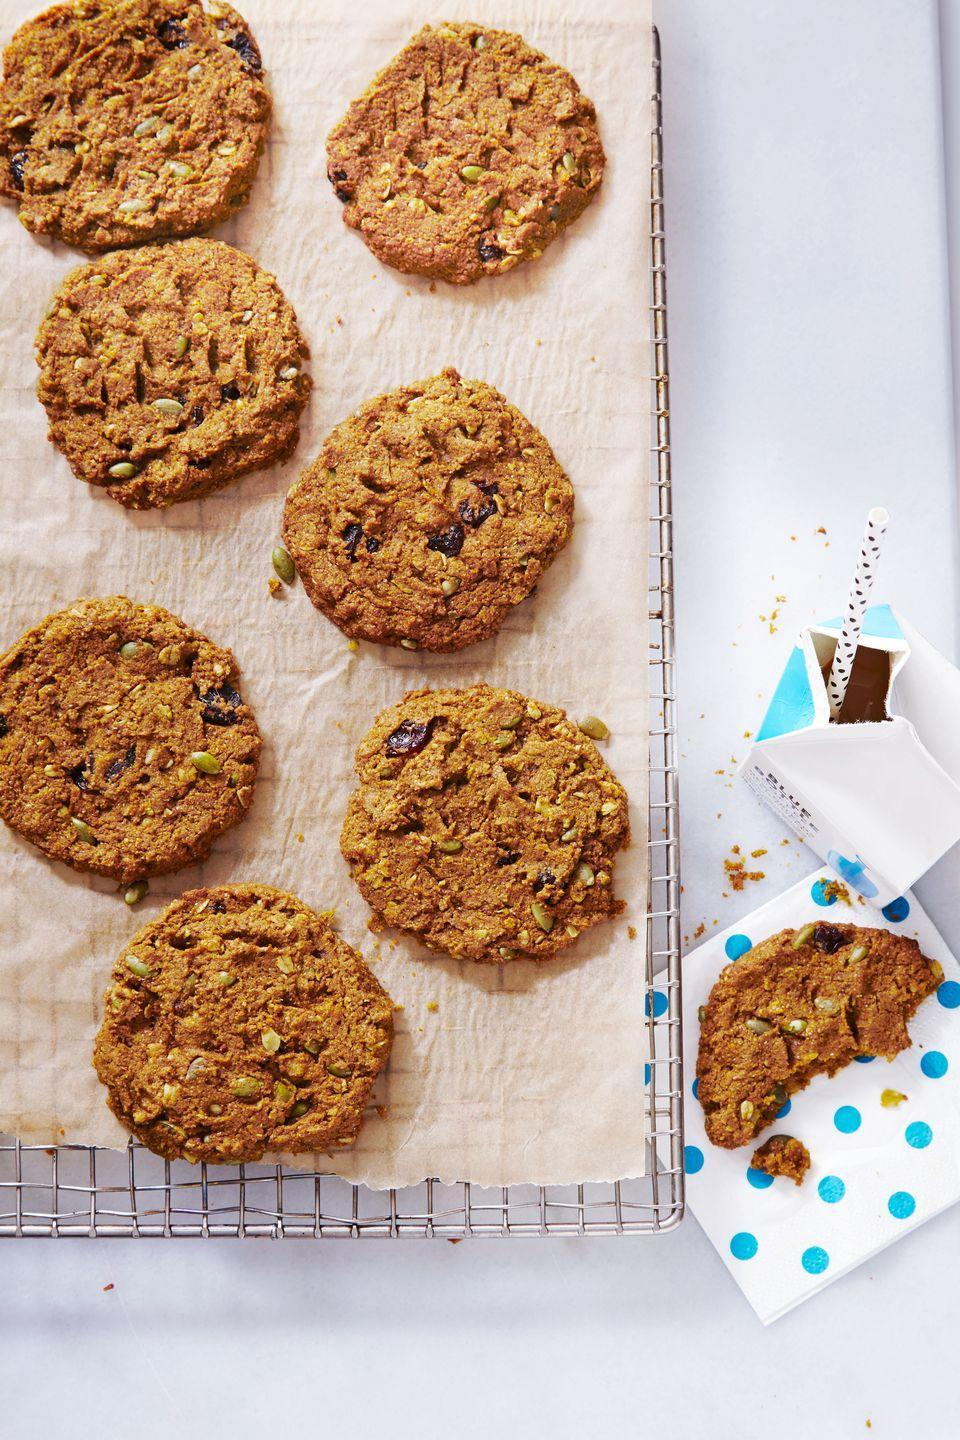 "<p>Baked with protein and fiber, these are some cookies that are 100% approved for breakfast.</p><p><em><a href=""https://www.goodhousekeeping.com/food-recipes/dessert/a35274/pumpkin-cherry-breakfast-cookies/"" rel=""nofollow noopener"" target=""_blank"" data-ylk=""slk:Get the recipe for Pumpkin-Cherry Breakfast Cookies »"" class=""link rapid-noclick-resp"">Get the recipe for Pumpkin-Cherry Breakfast Cookies »</a></em> </p>"